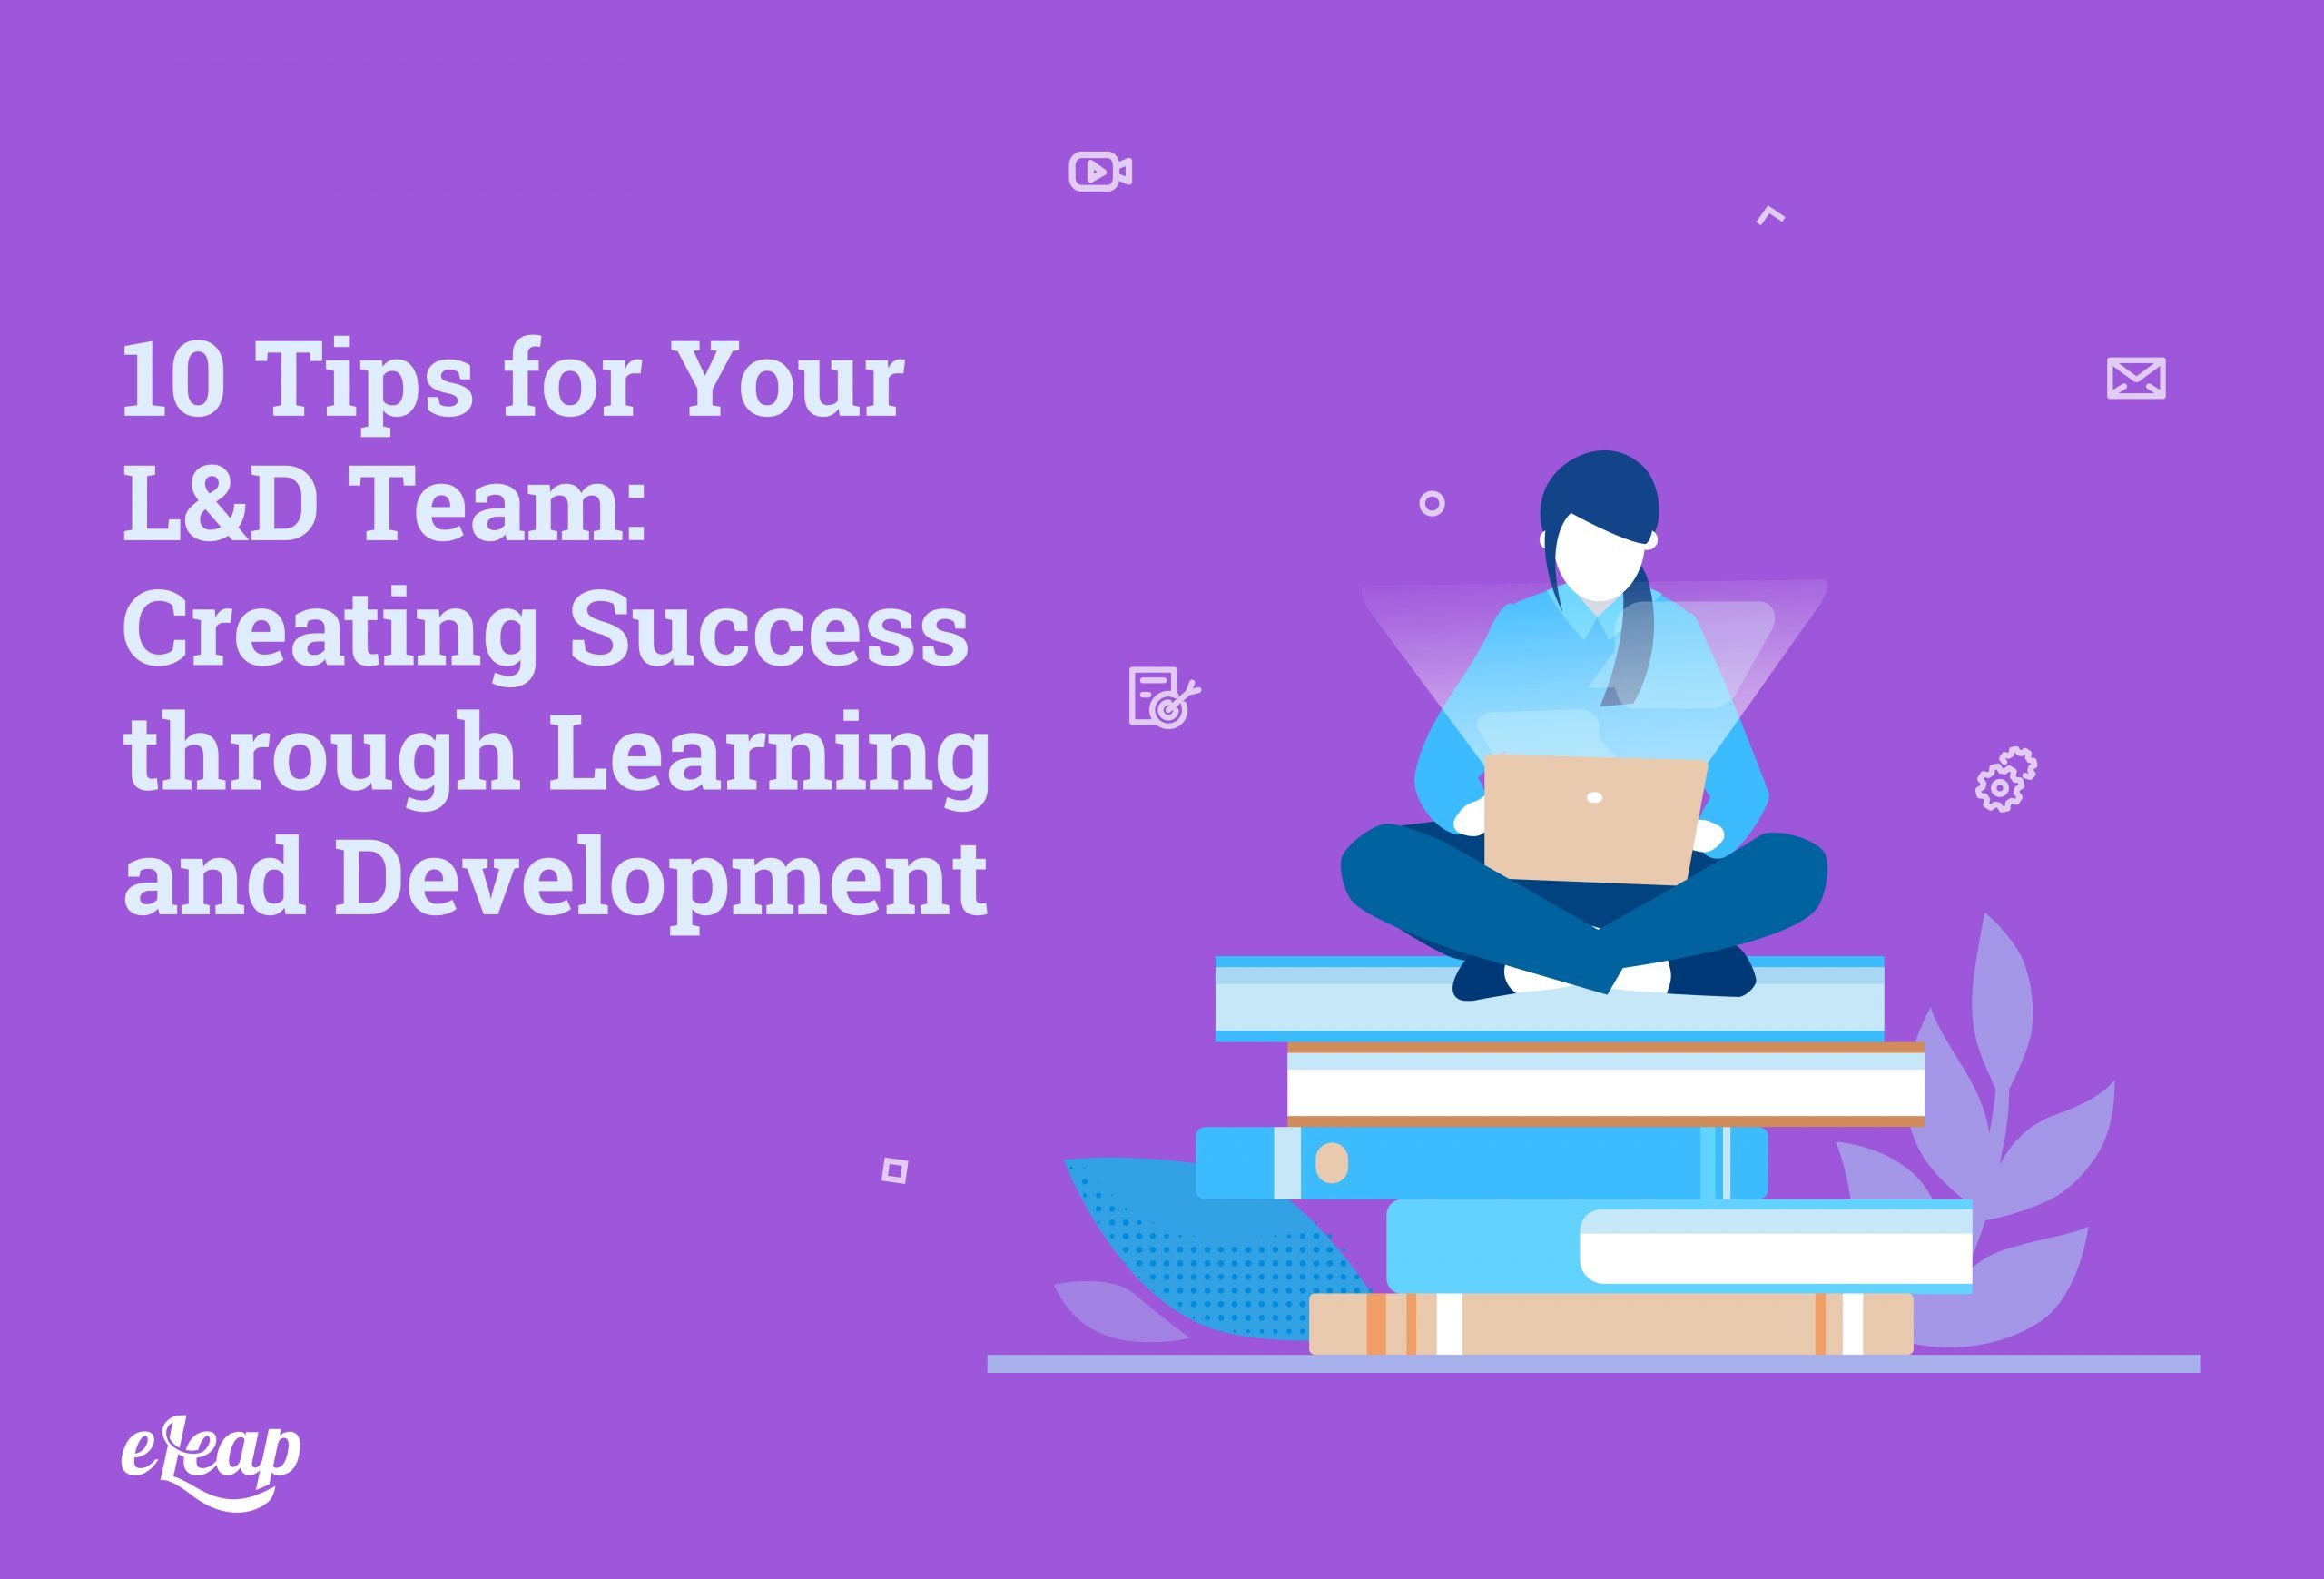 10 Tips for Your L&D Team: Creating Success through Learning and Development